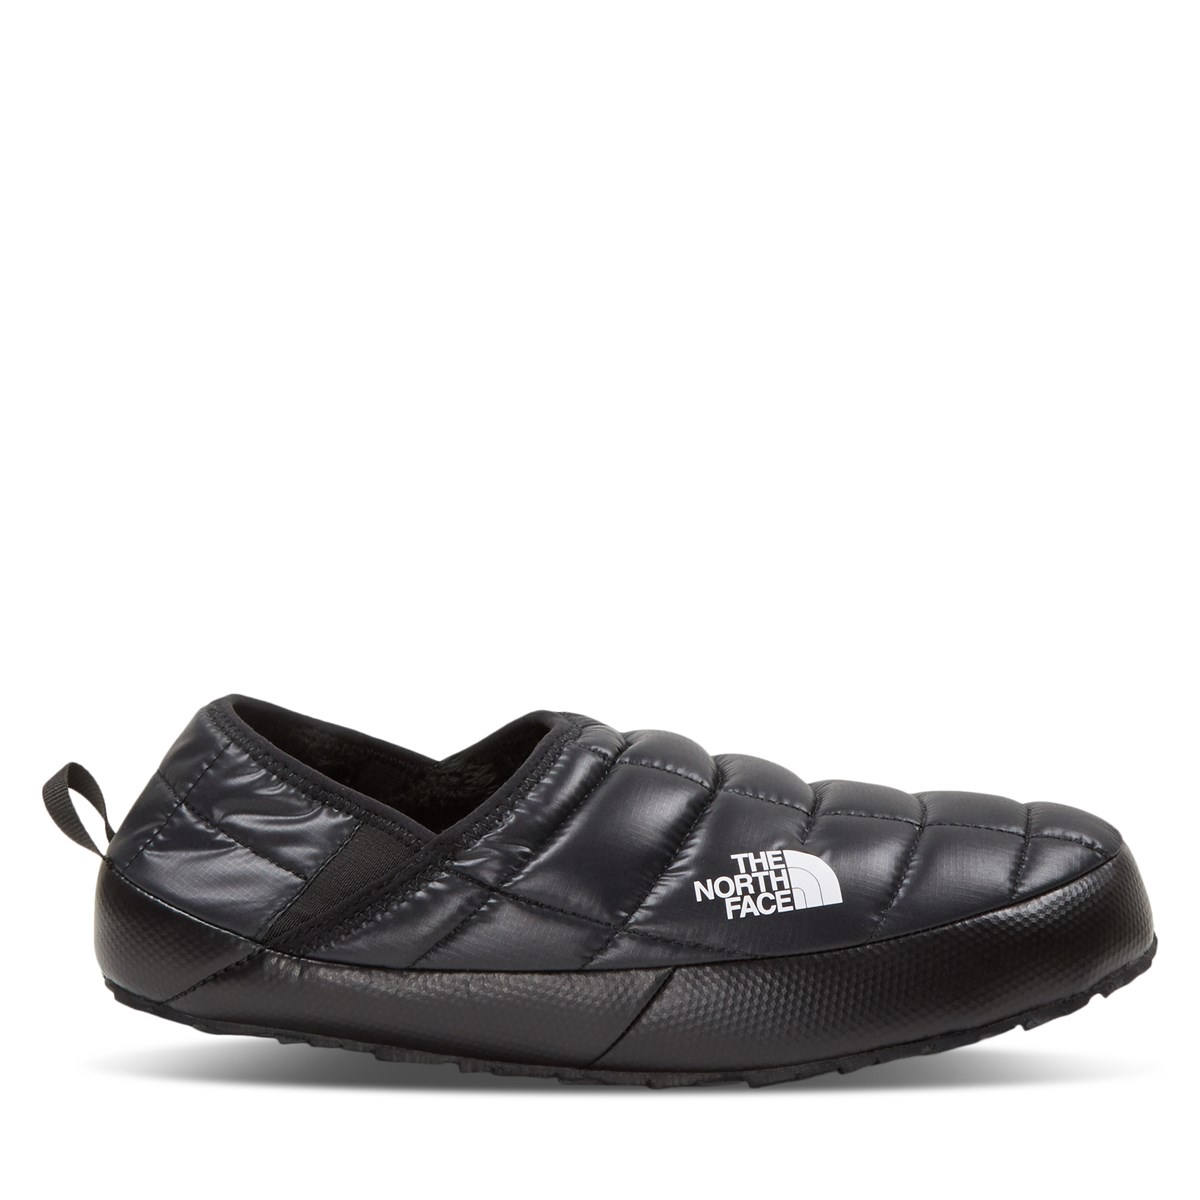 Women's Thermoball Traction Mule IV Slip Ons in Black